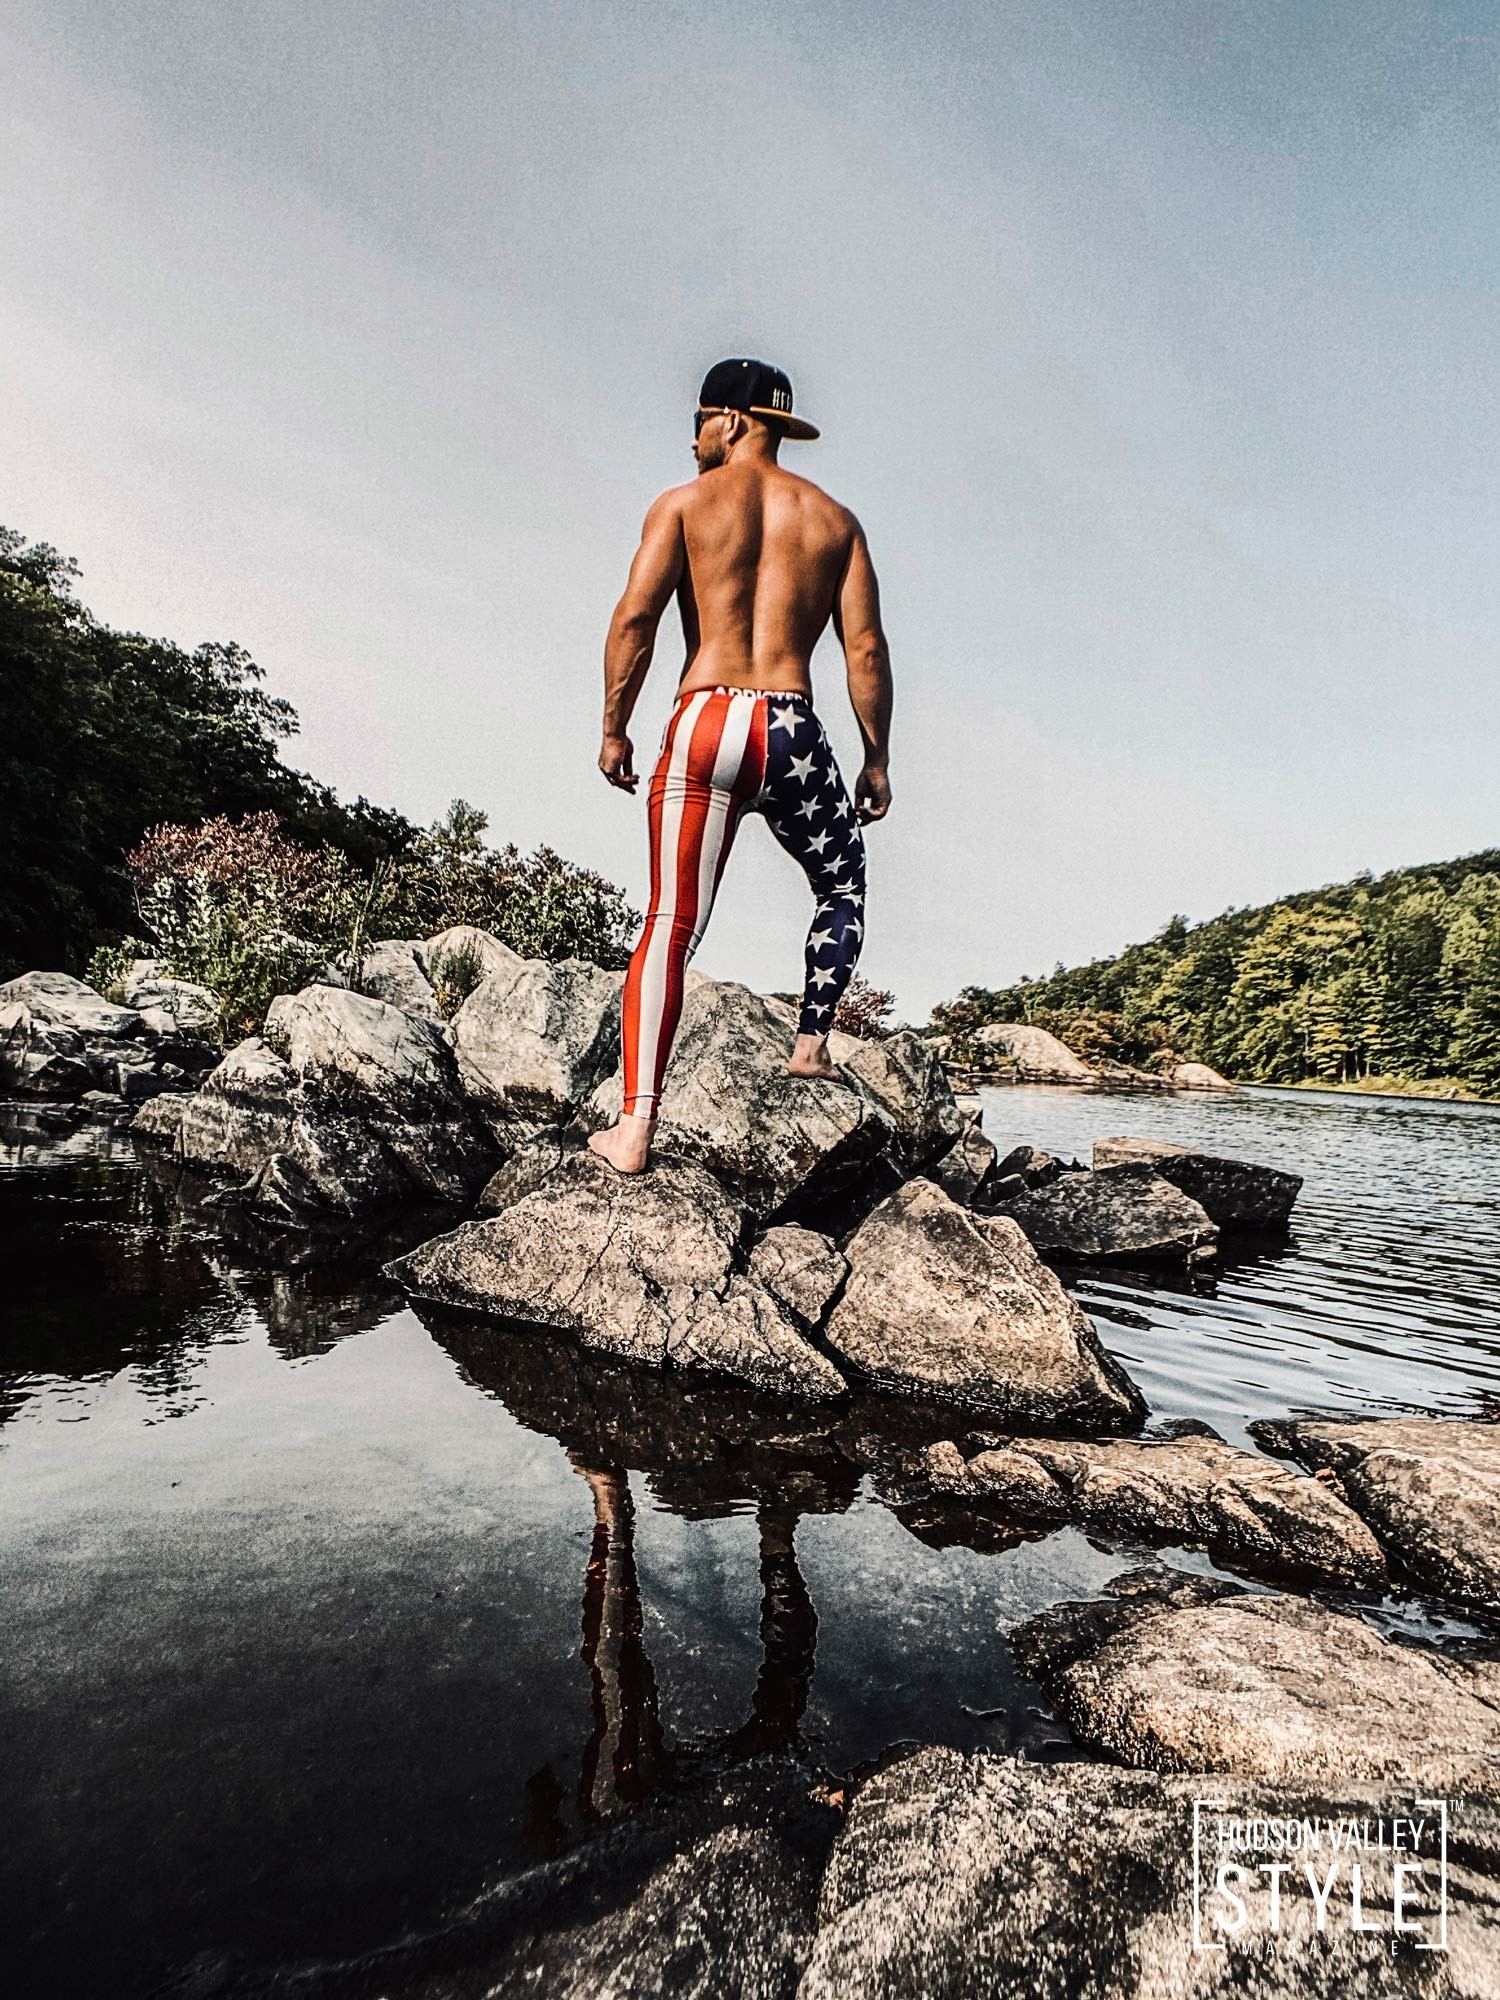 Exploring Outdoors in the Hudson Valley while Encouraging Activities To Stay Healthy by Maxwell Alexander, Certified Fitness Trainer and Bodybuilding Coach